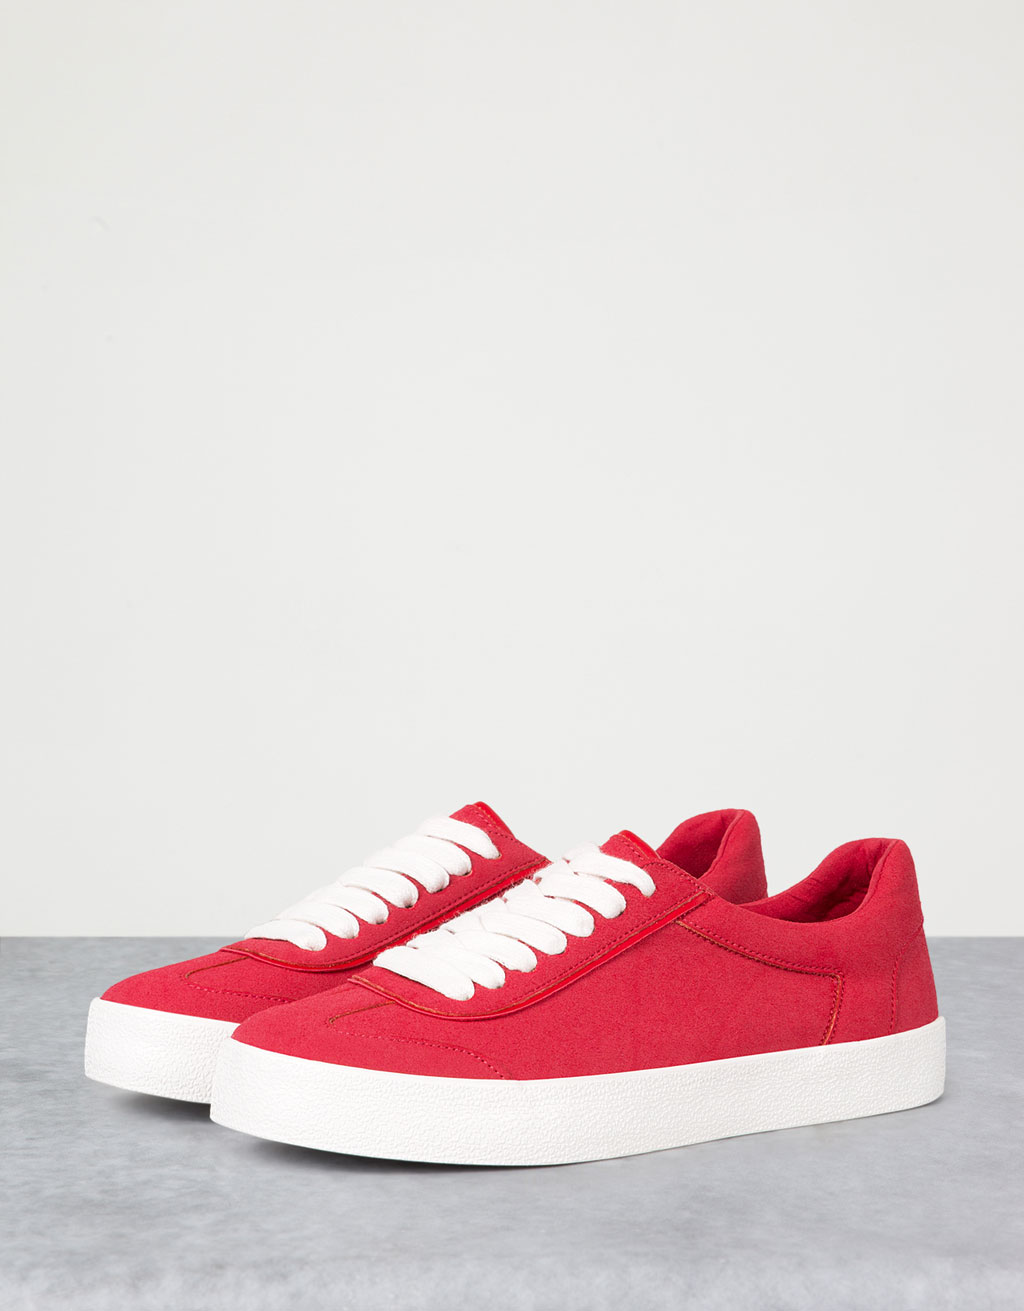 Basic single-colour sneakers